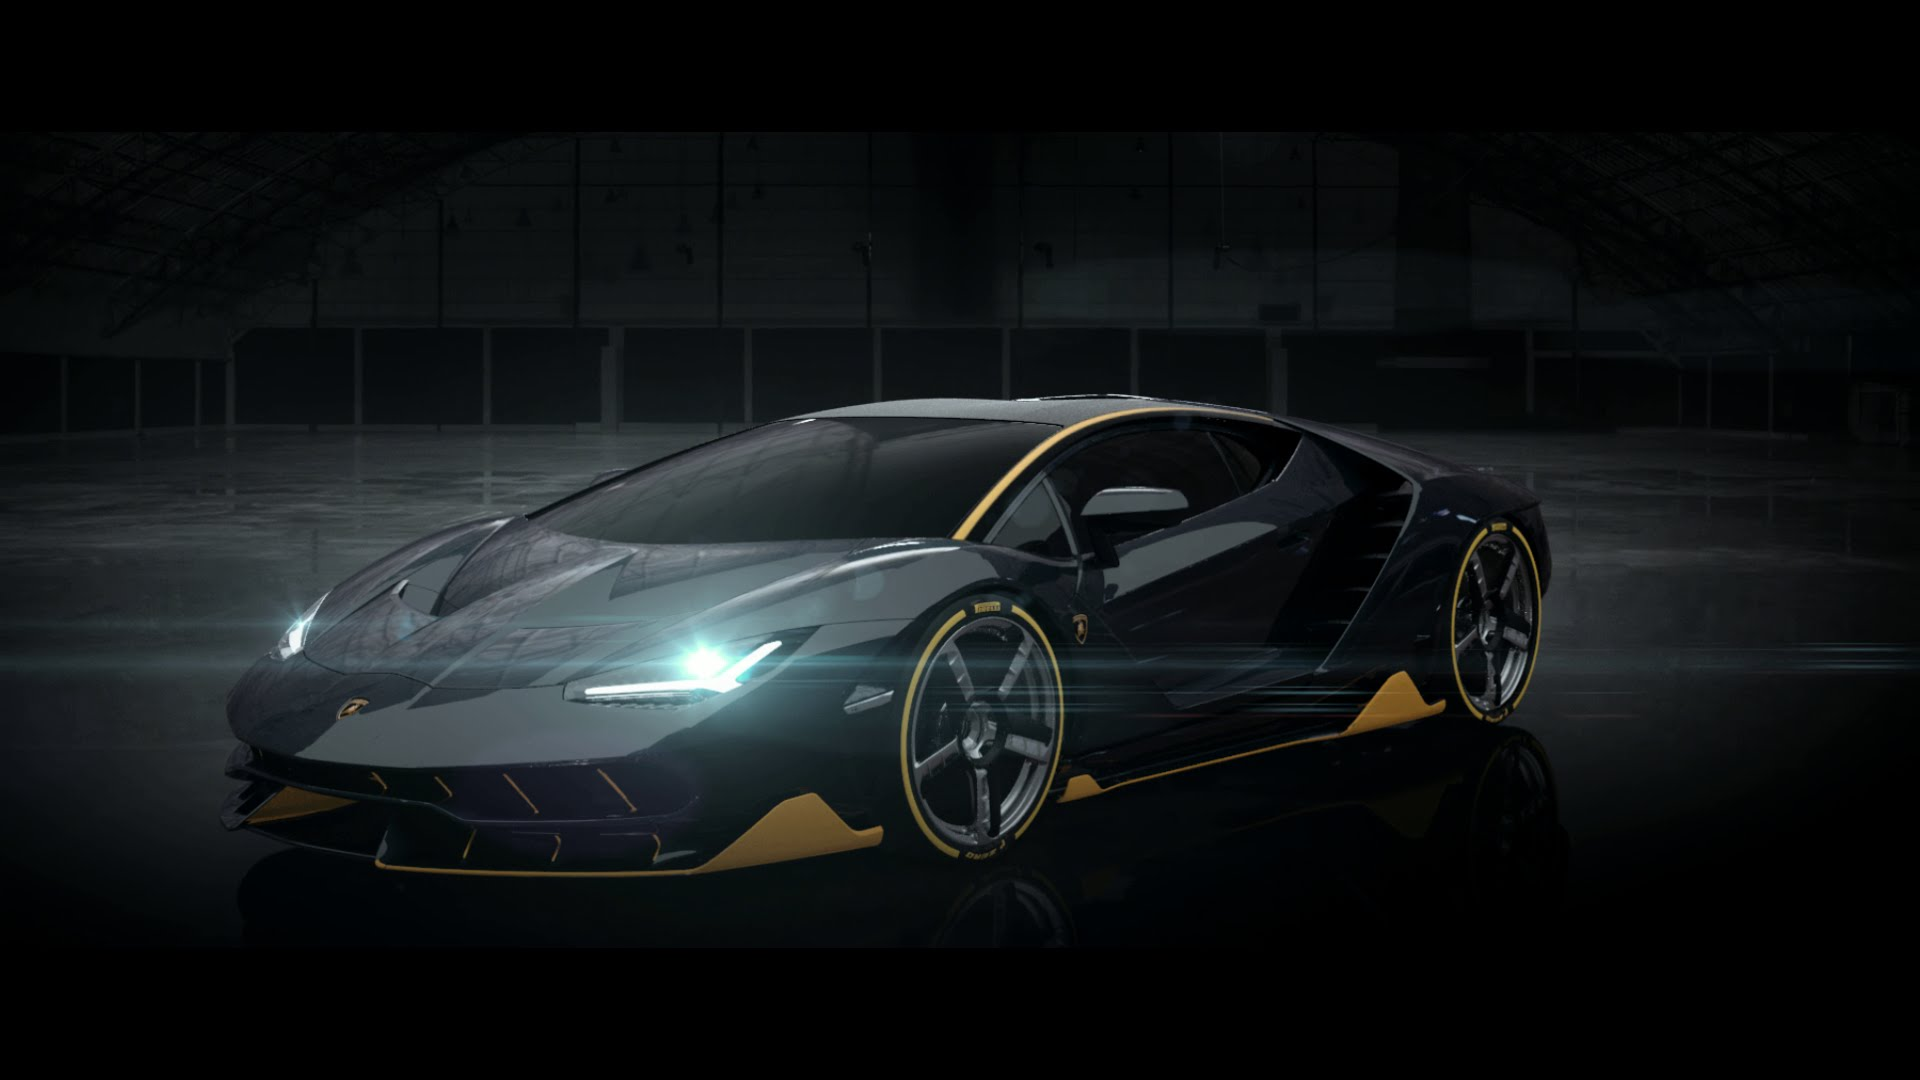 The Top 10 Most Expensive Cars - Gazette Review Lamborghini And Ferrari Which One Is More Expensive on